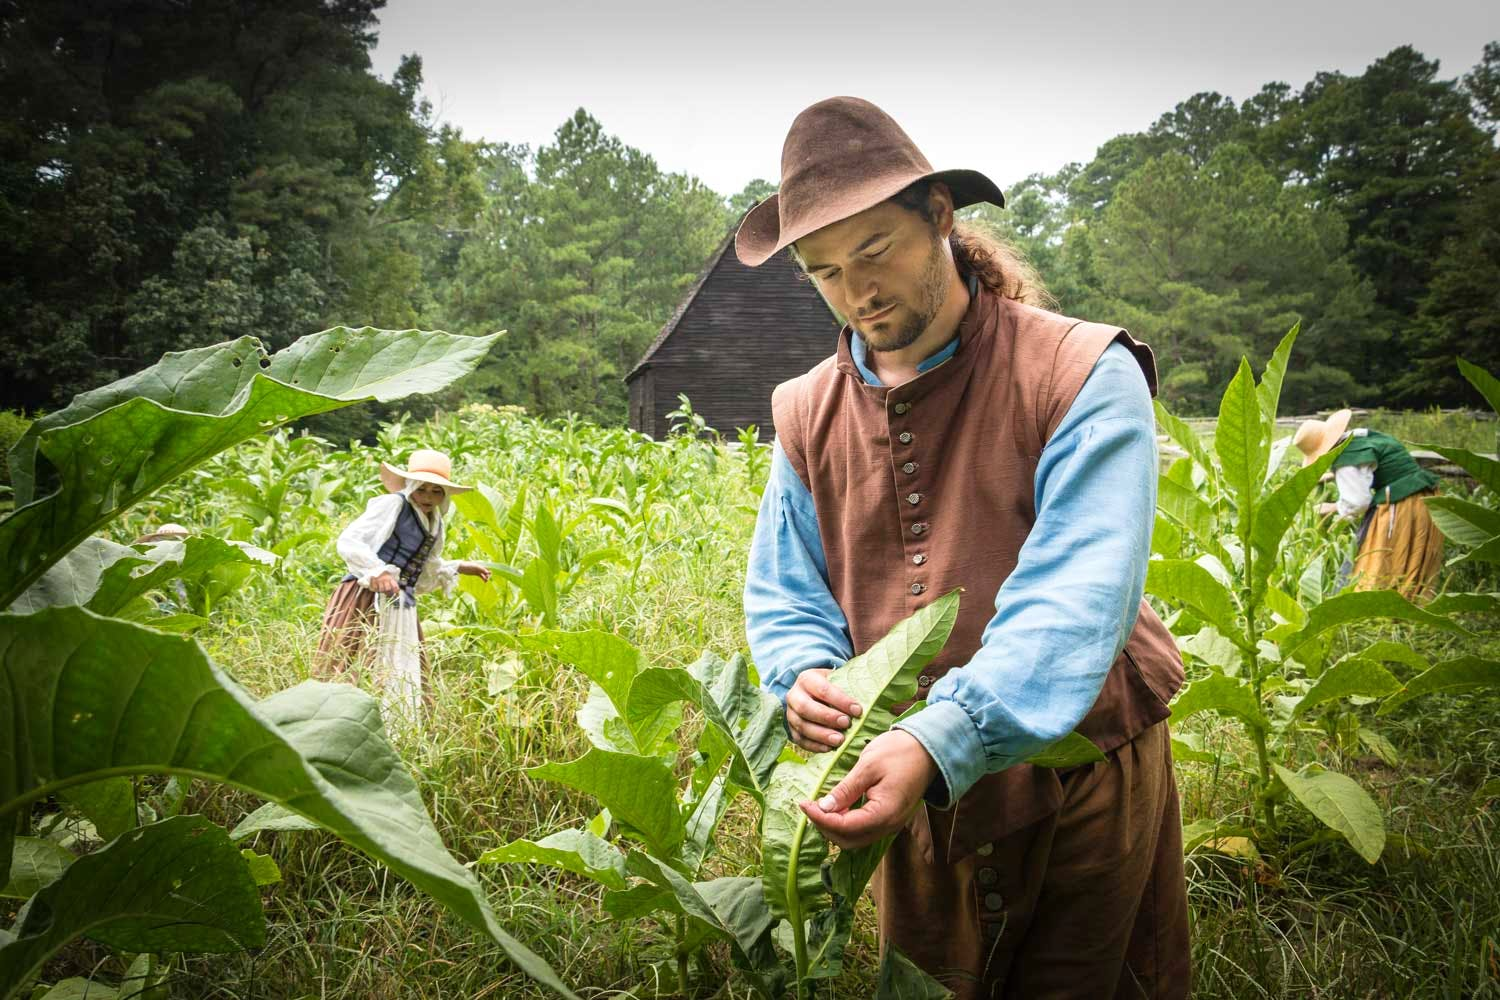 Staff at the Godiah Spray Tobacco plantation are inspecting the tobacco plants for insects that eat the plants